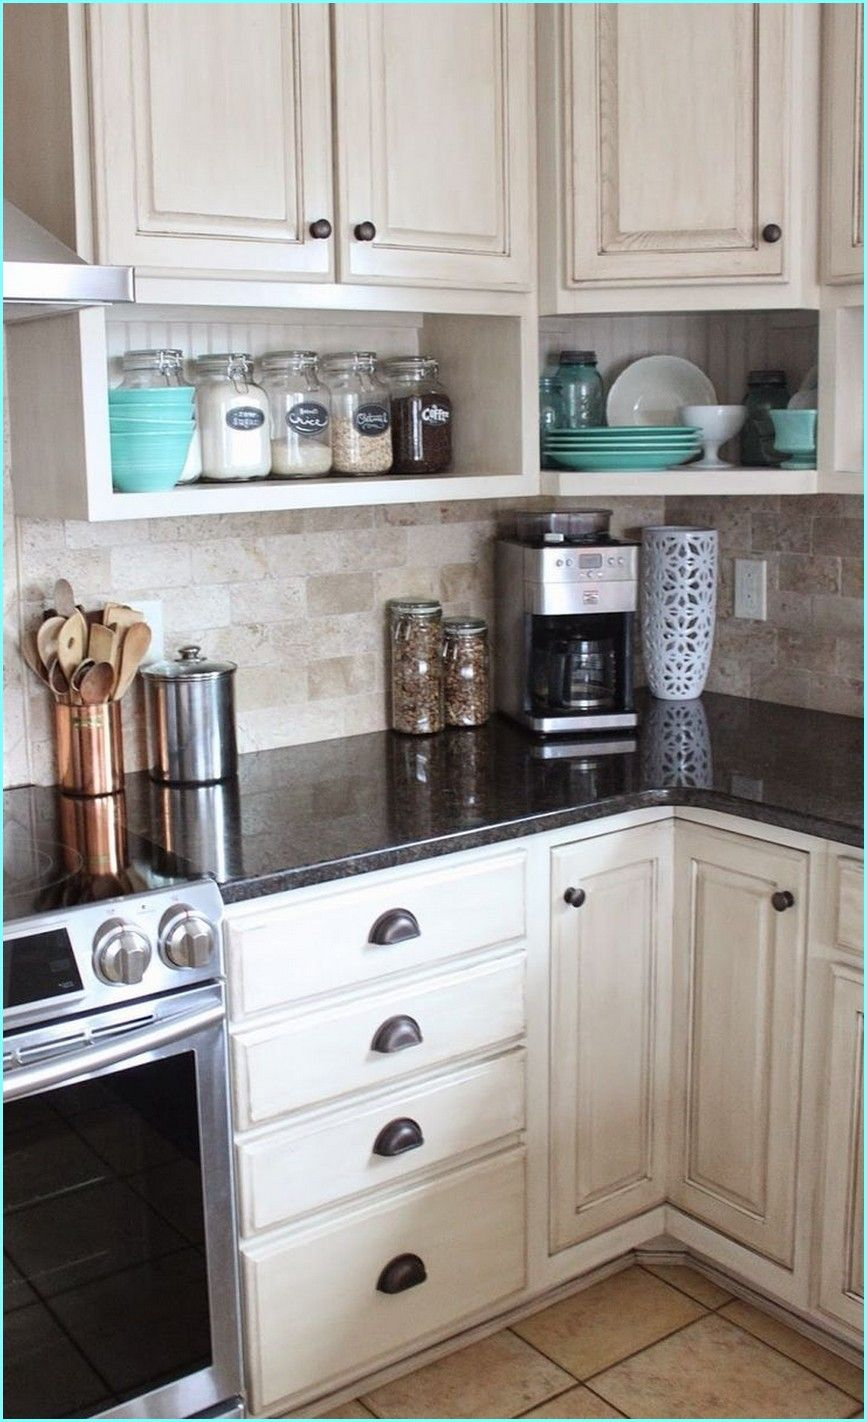 39 Kitchen Remodeling Trends That Are Hitting The Mark 7 In 2020 Kitchen Design Diy Kitchen Remodel Small Kitchen Wall Decor Farmhouse